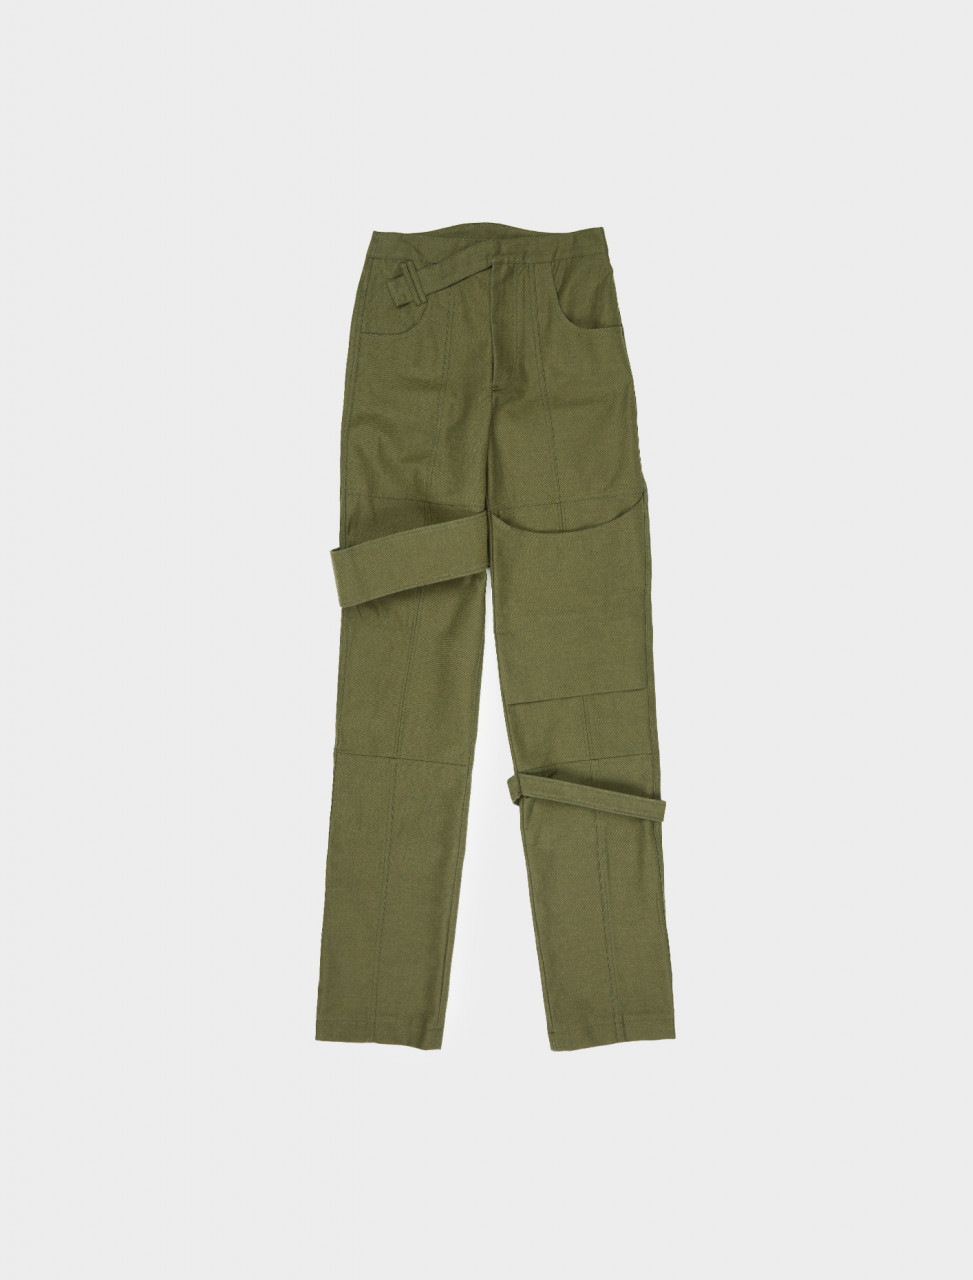 342-SS20NATH MAINLINE NATH TROUSER GREEN